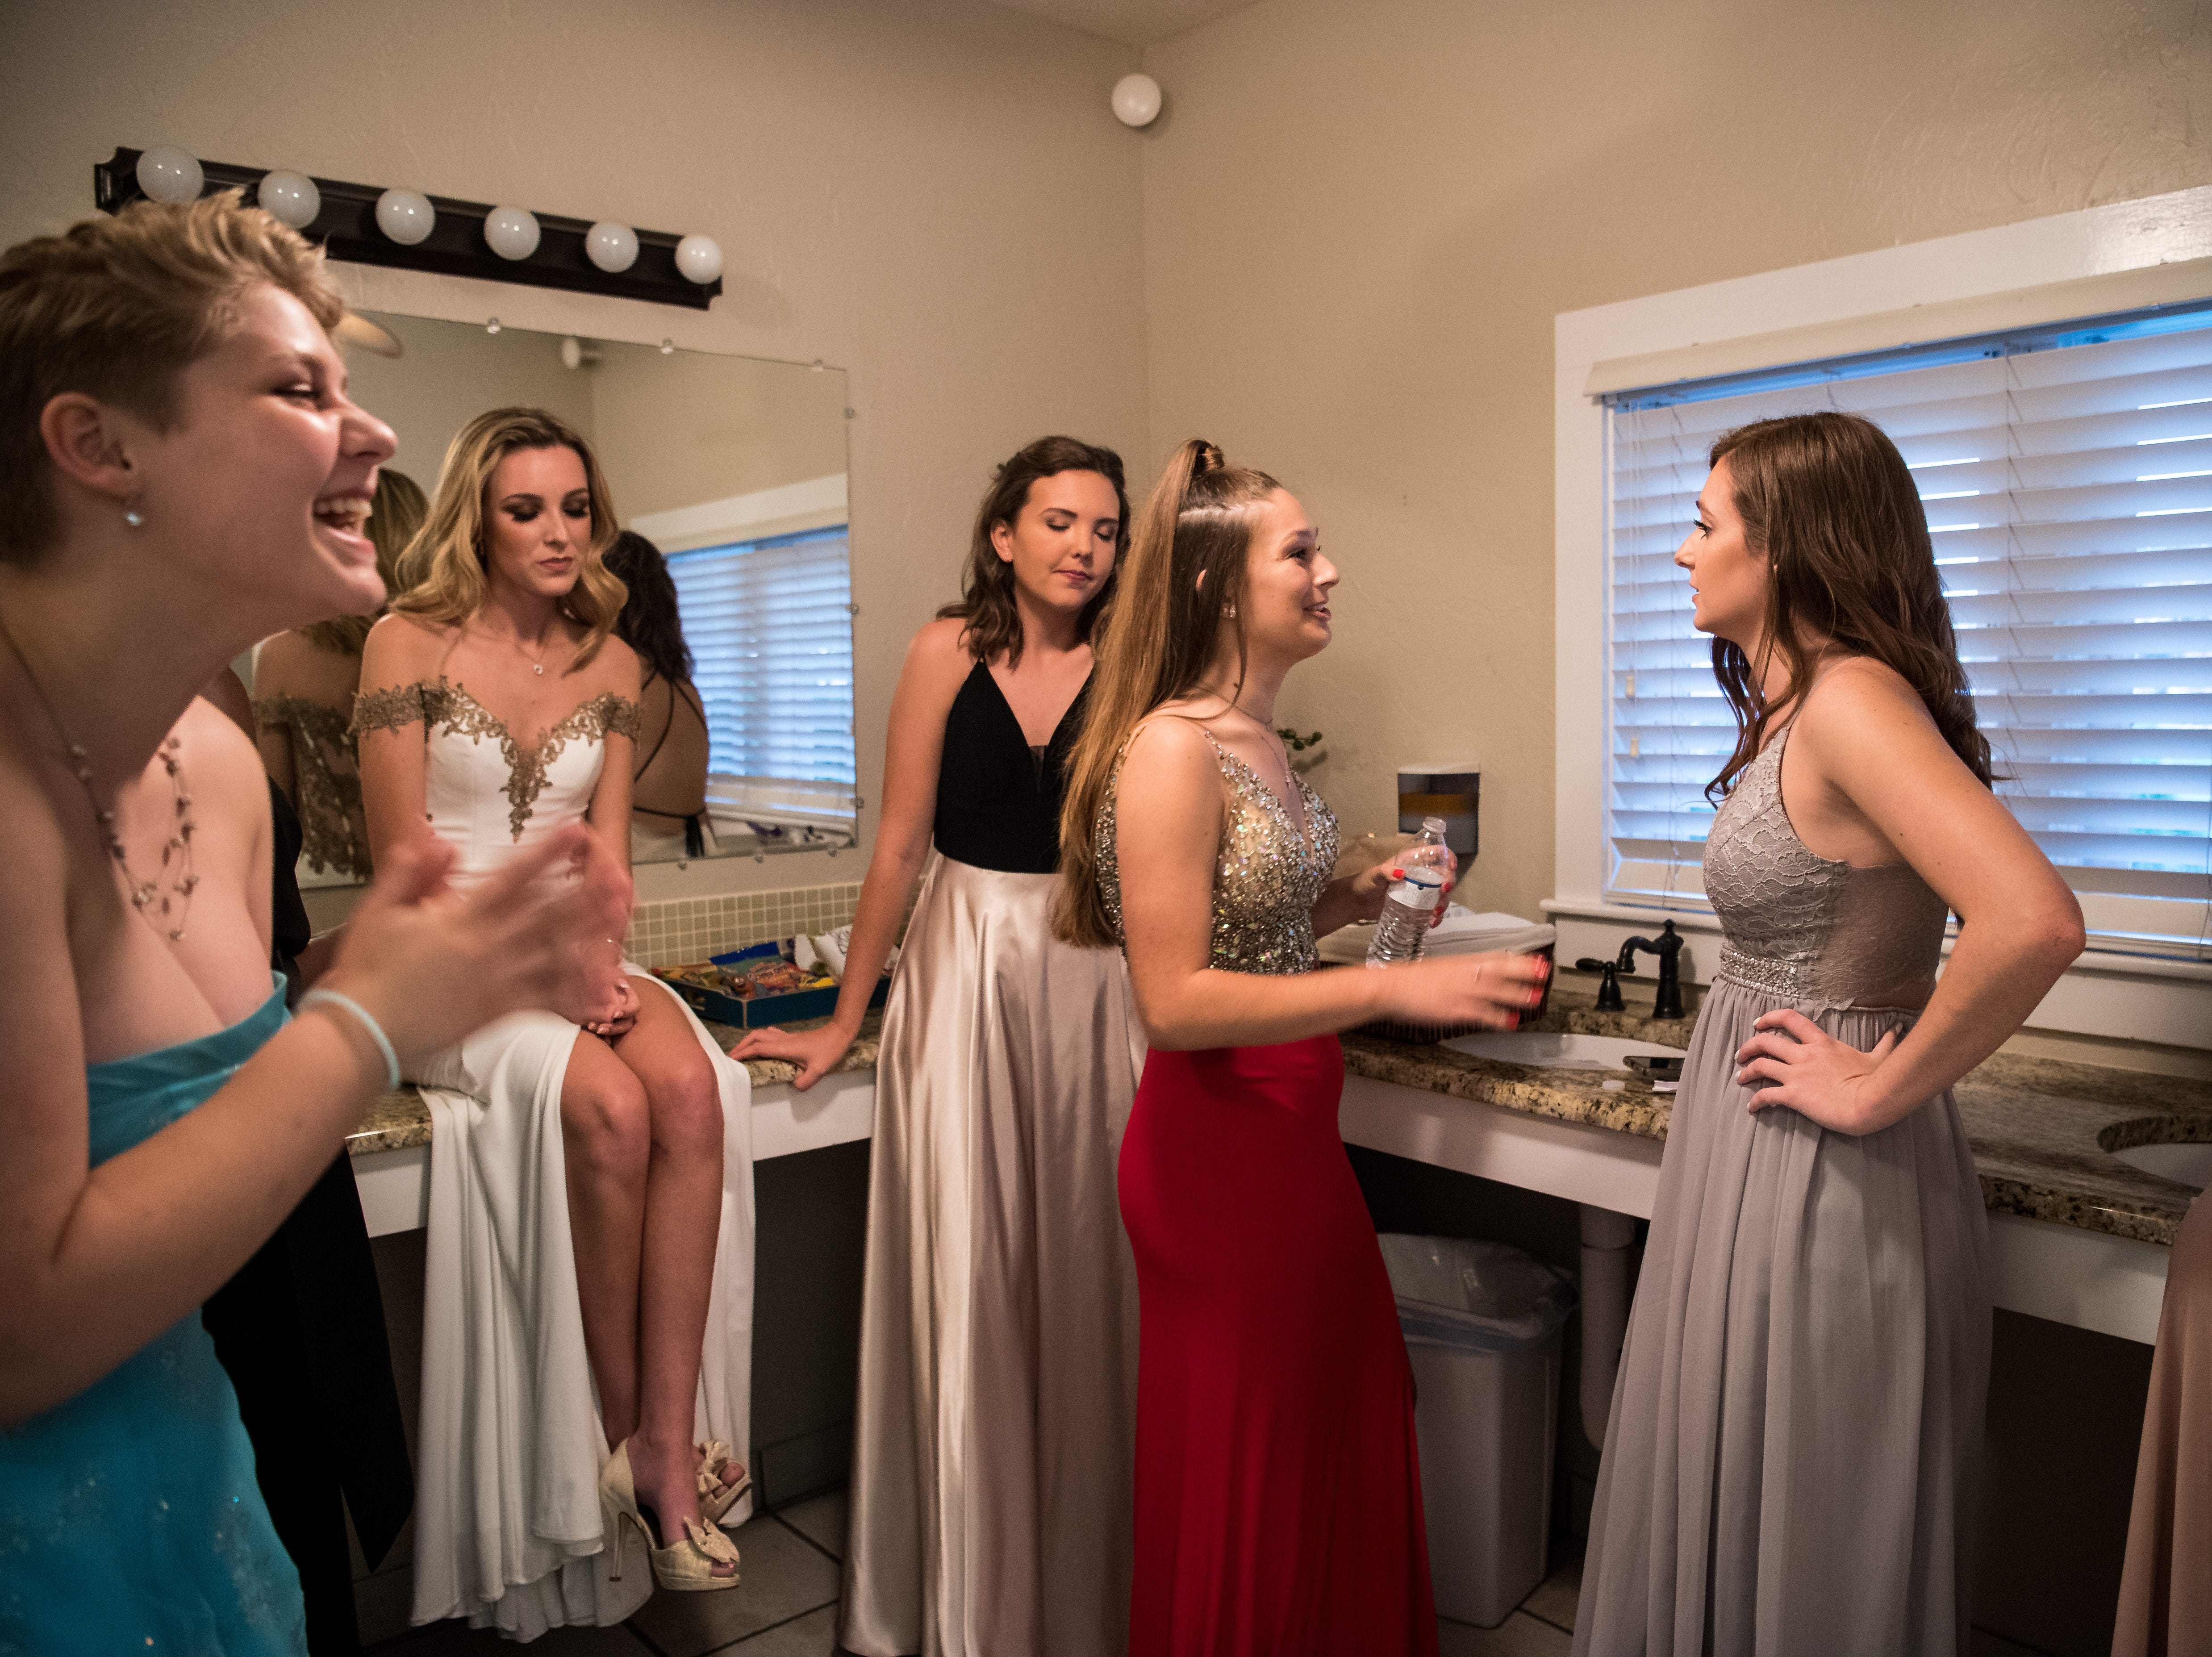 Excited, nervous and otherwise occupied 2019 Miss Hibiscus Pageant contestants socialize offstage Thursday, April 11, 2019, at the Heritage Center in Vero Beach.